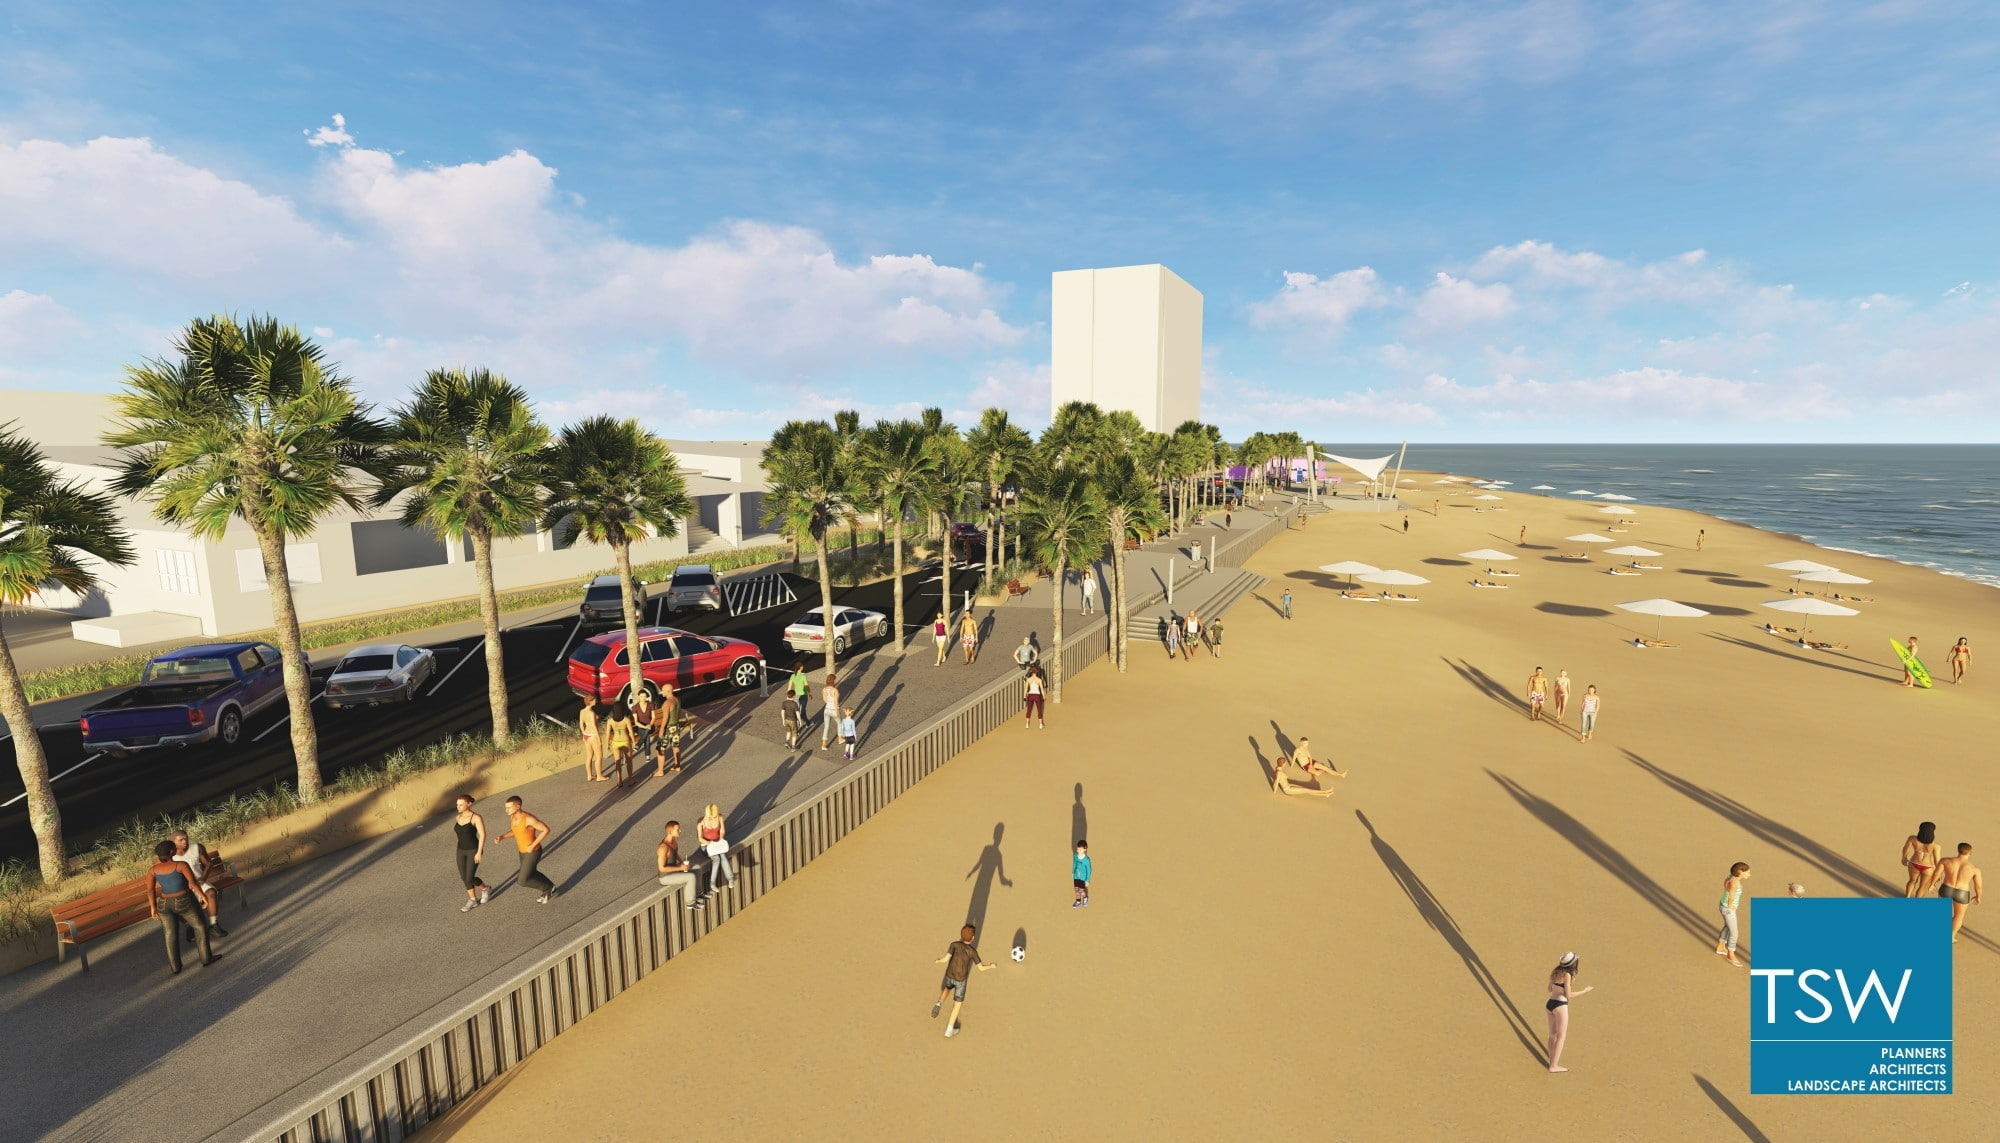 TSW 2017.09.6-Phase-2-Marketing-Images1 Gulf Shores Begins Phase II of Public Beach Transformation In The News Landscape Architecture Planning Sustainable Design  Habitat Environment Public Private Partnership Public Park Urban Design Southeast complete streets resilient coastal waterfront Waterfront Development Revitalization Low Impact Development Gulf Place TSW redevelopment   TSW